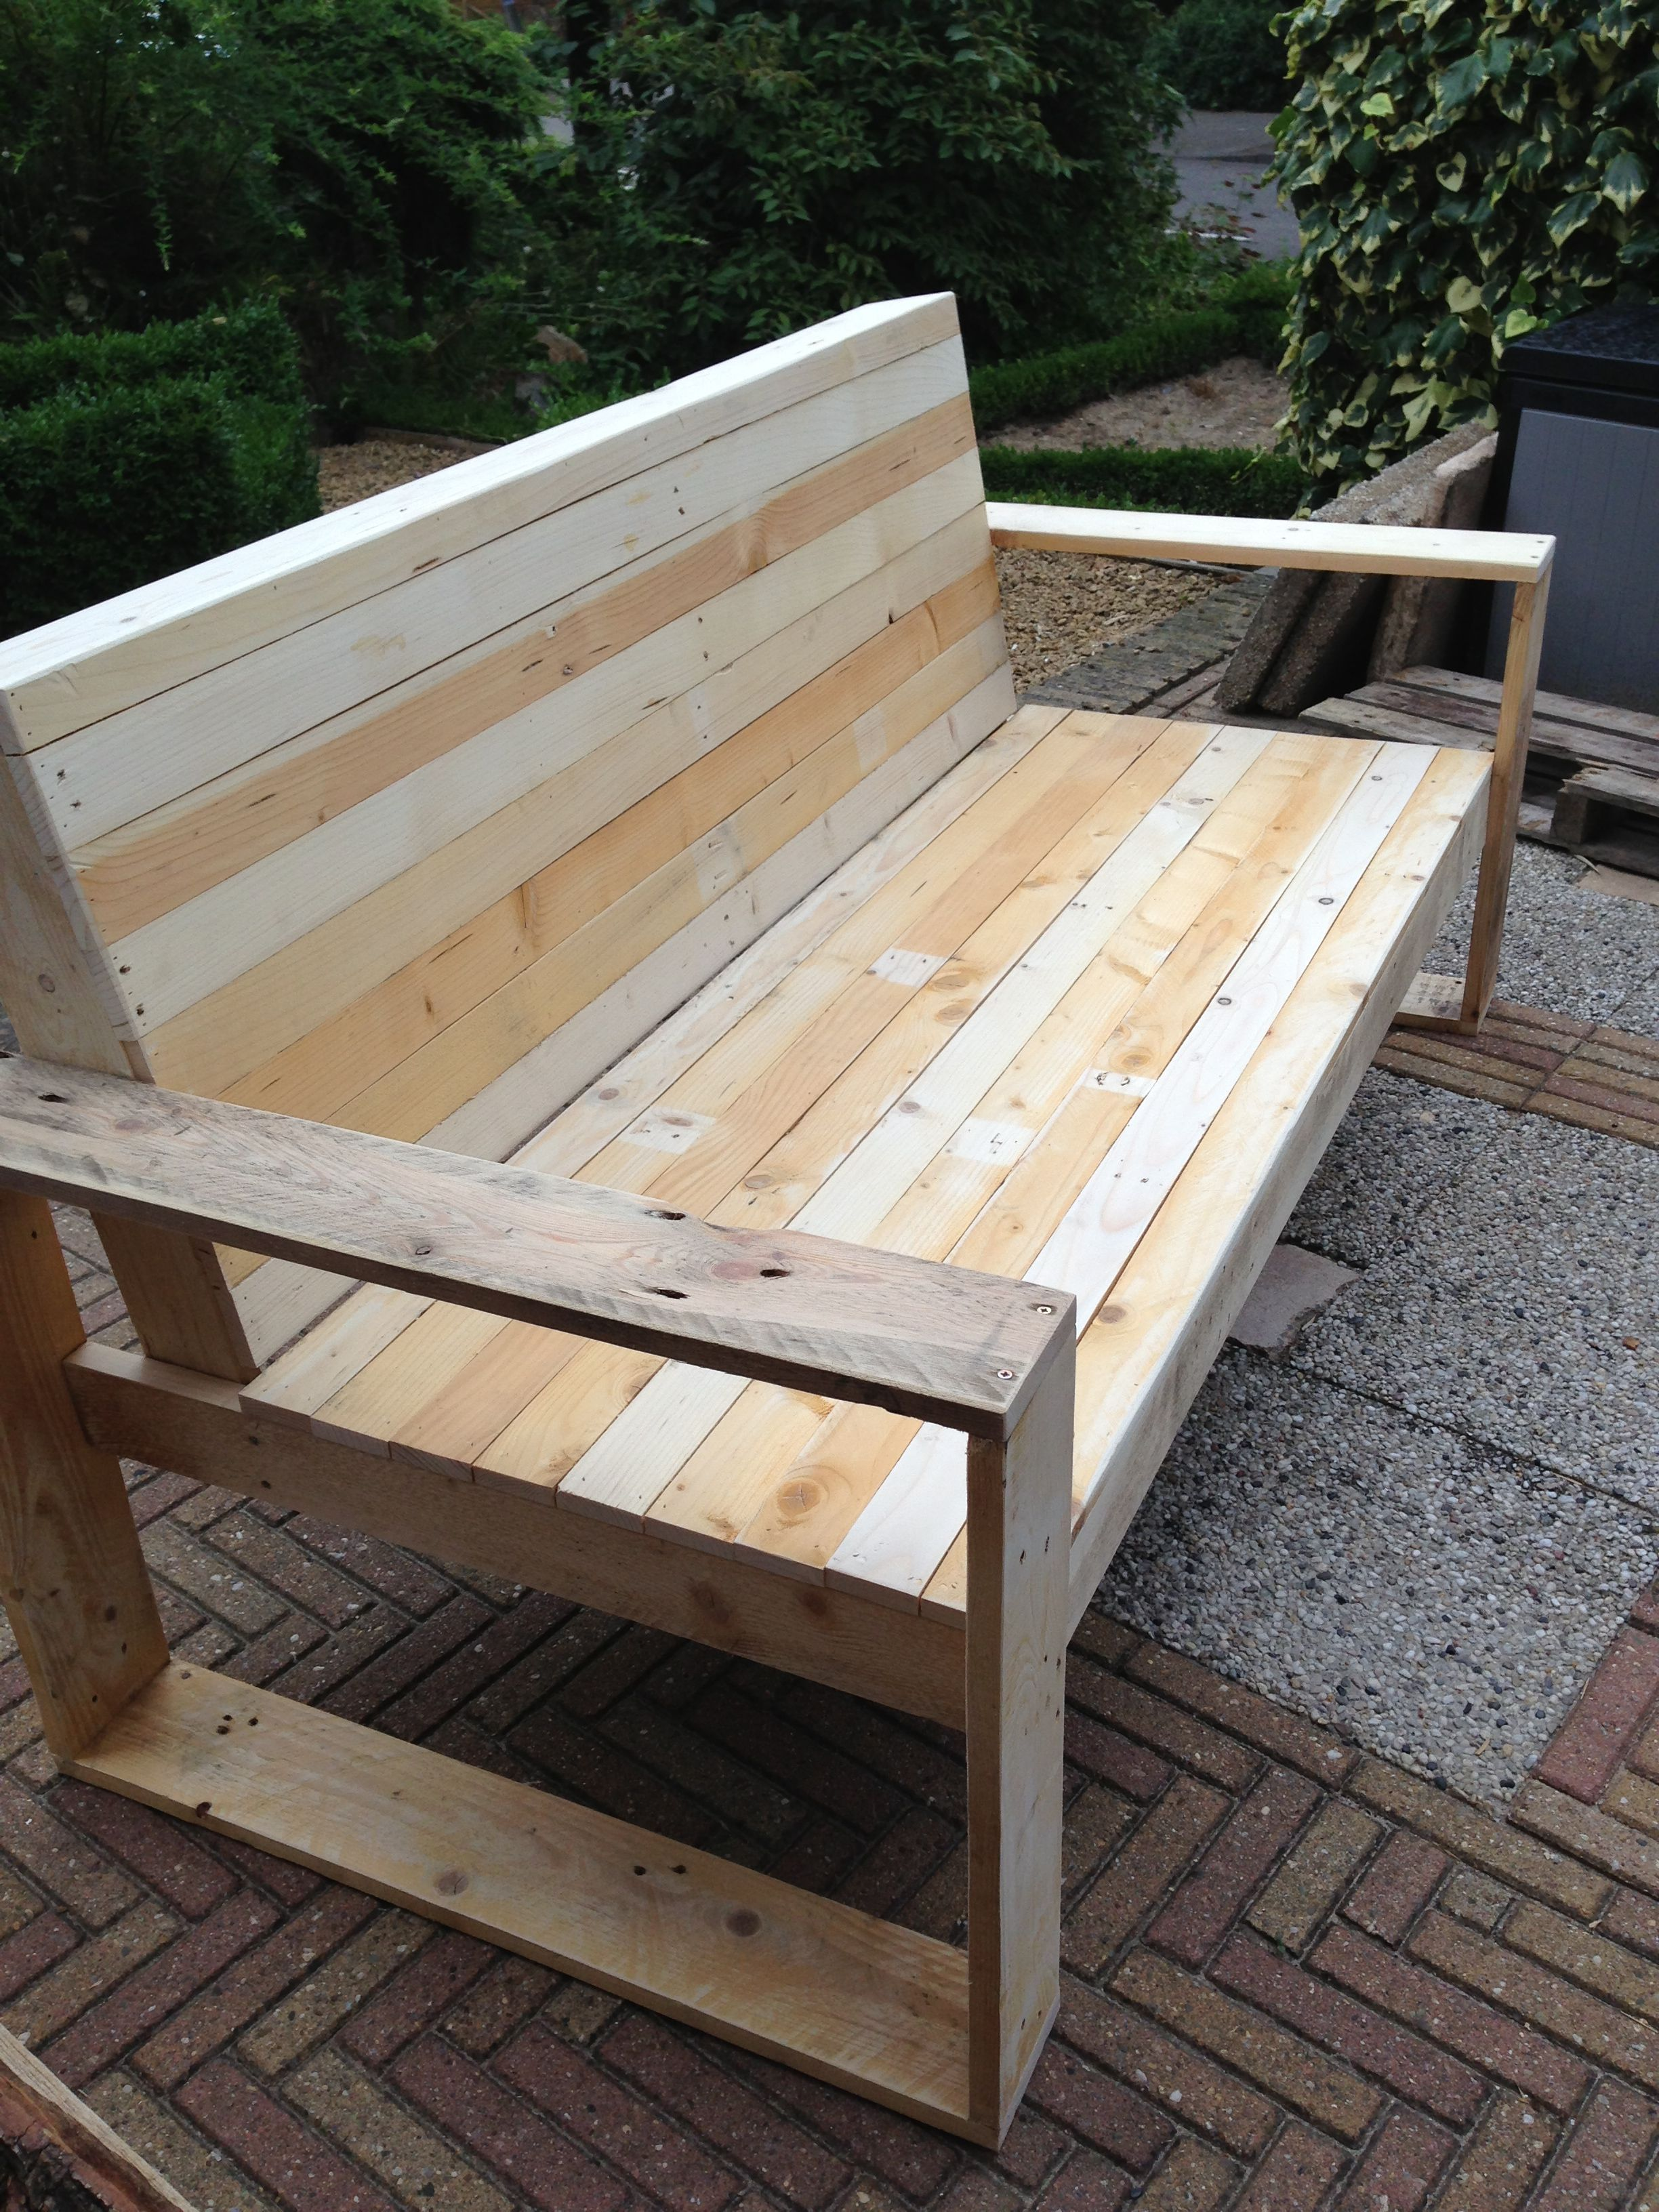 Pallet Bench Diy Made Of Palletwood Gardenbench Woodwork The Third Bench I Made Diy Pallet Furniture Pallet Furniture Outdoor Pallet Garden Benches